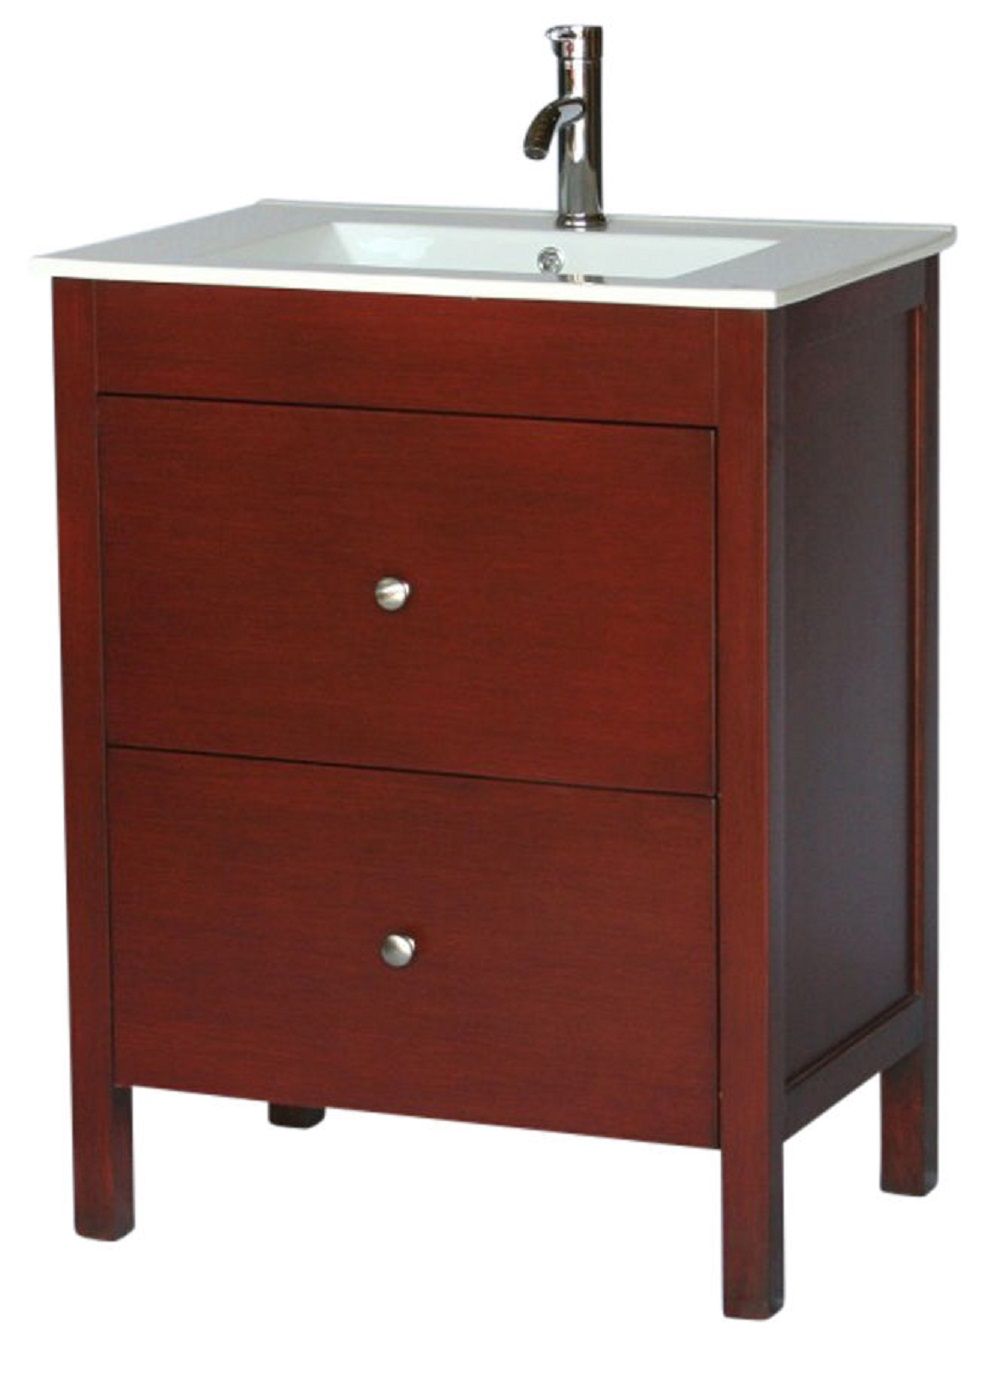 28 Inch 18 Deep Bathroom Vanity Modern Style Cherry Color Wx18 Dx36 H S3022f